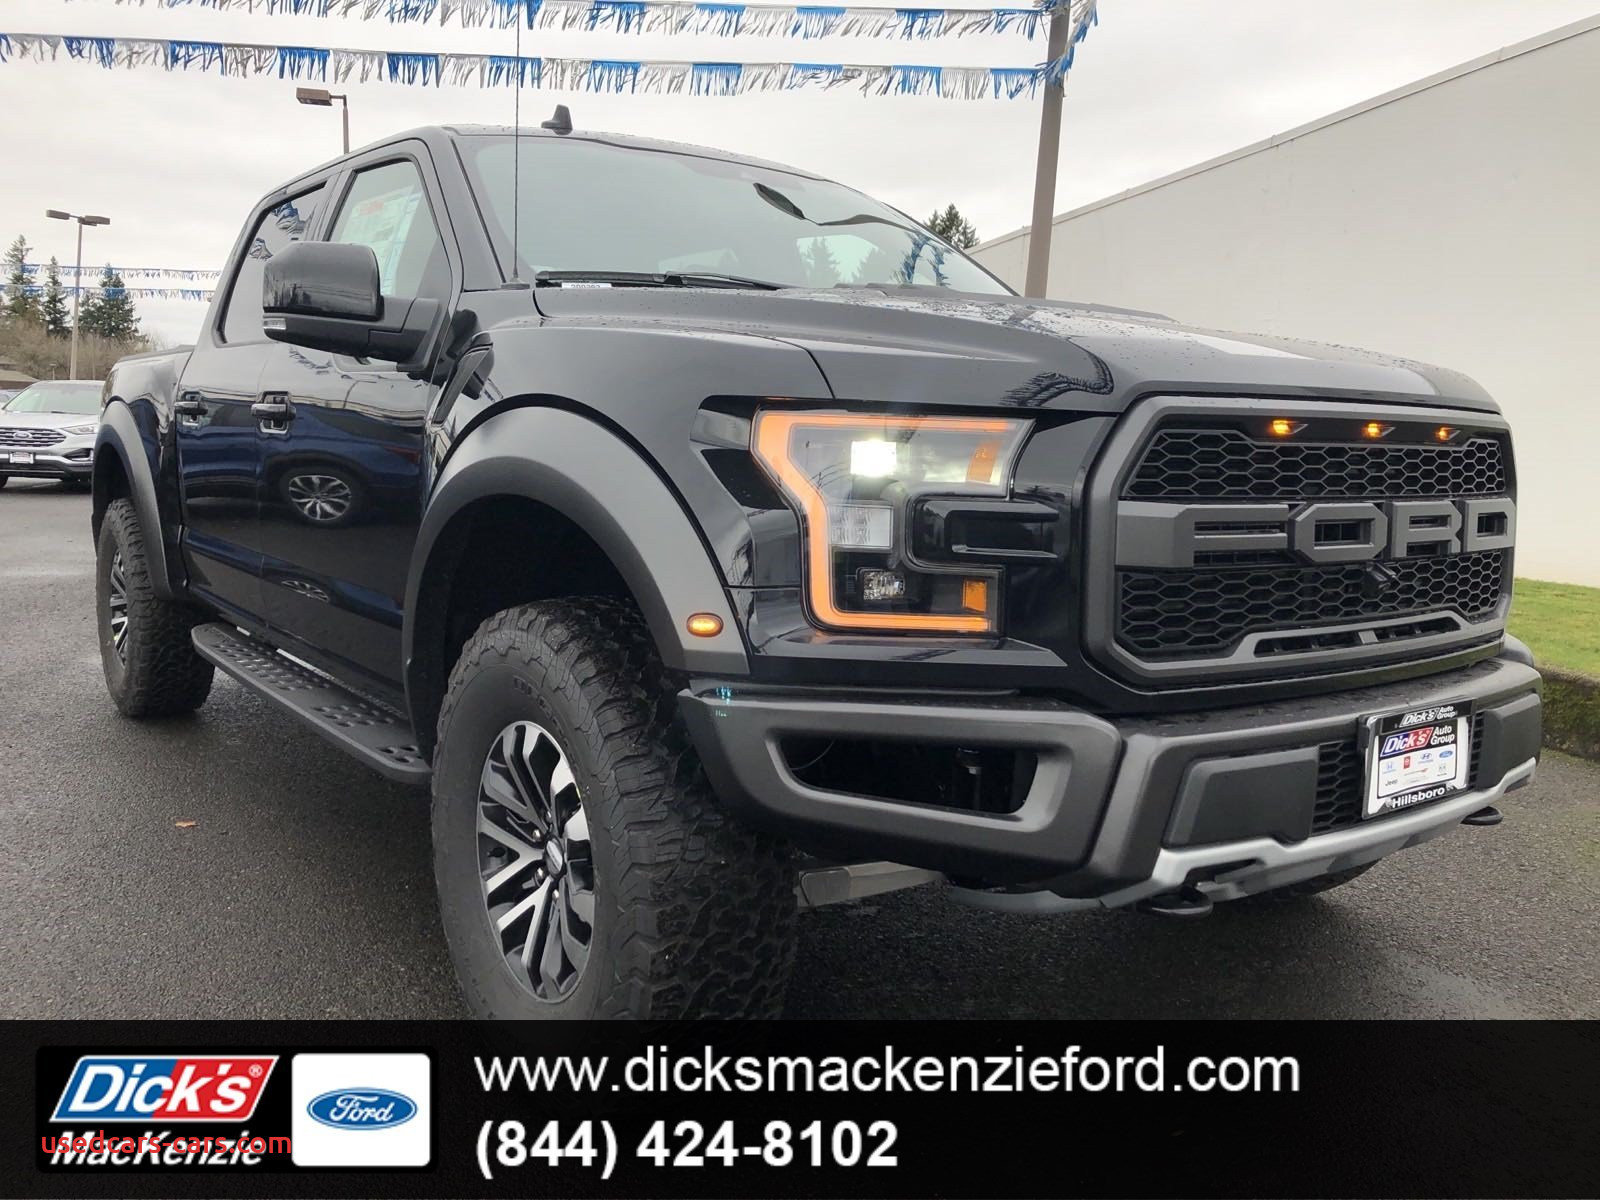 2020 ford 4x4 Truck Unique New 2020 ford F 150 Raptor 4wd Supercrew 5 5 with Navigation & 4wd